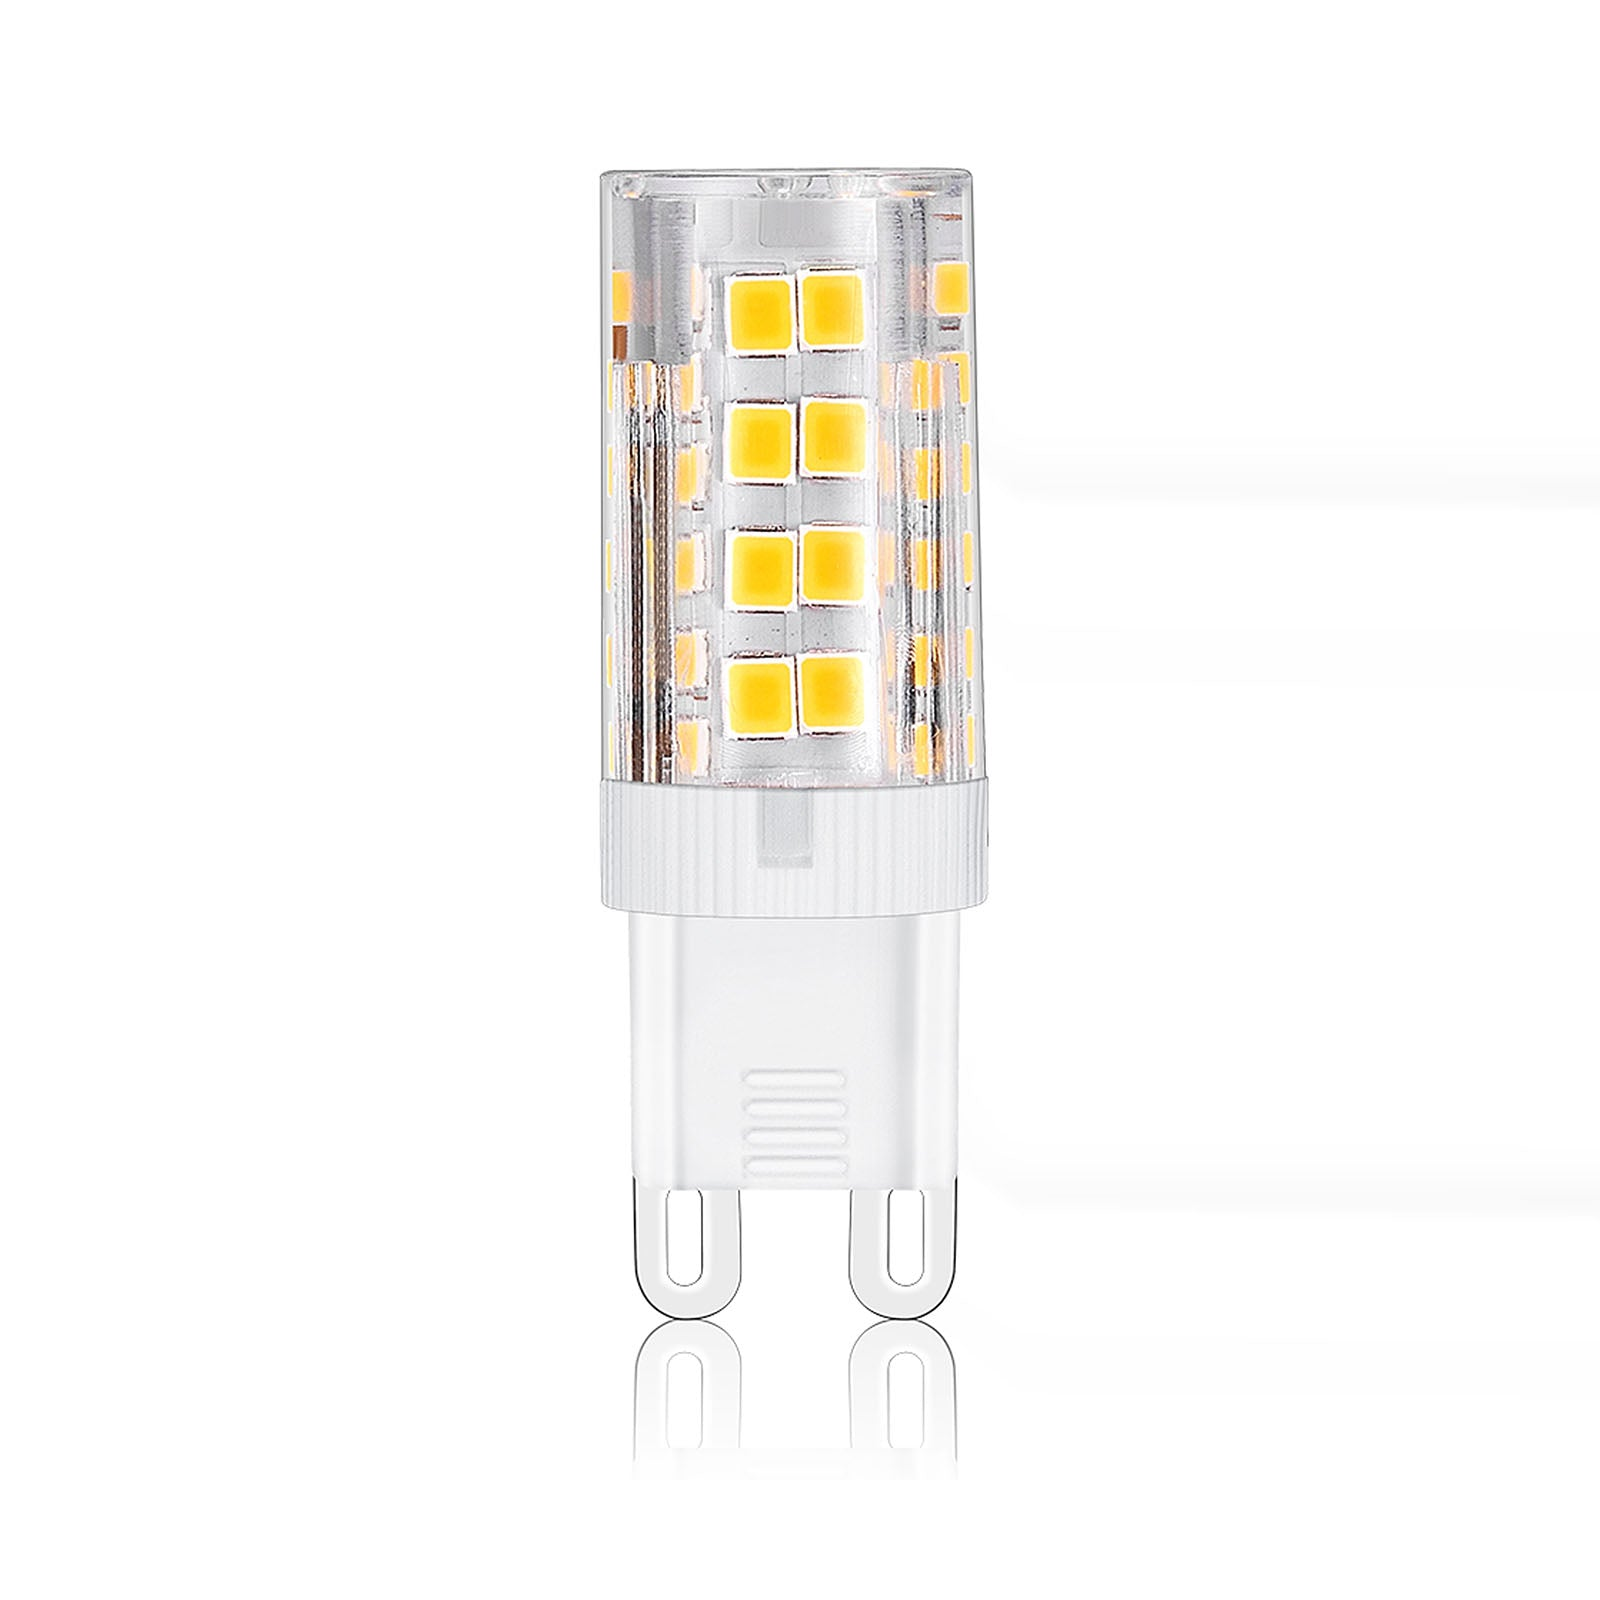 Set of 6 LED G9 bulbs YY-LED-51D-2835-220V-G9